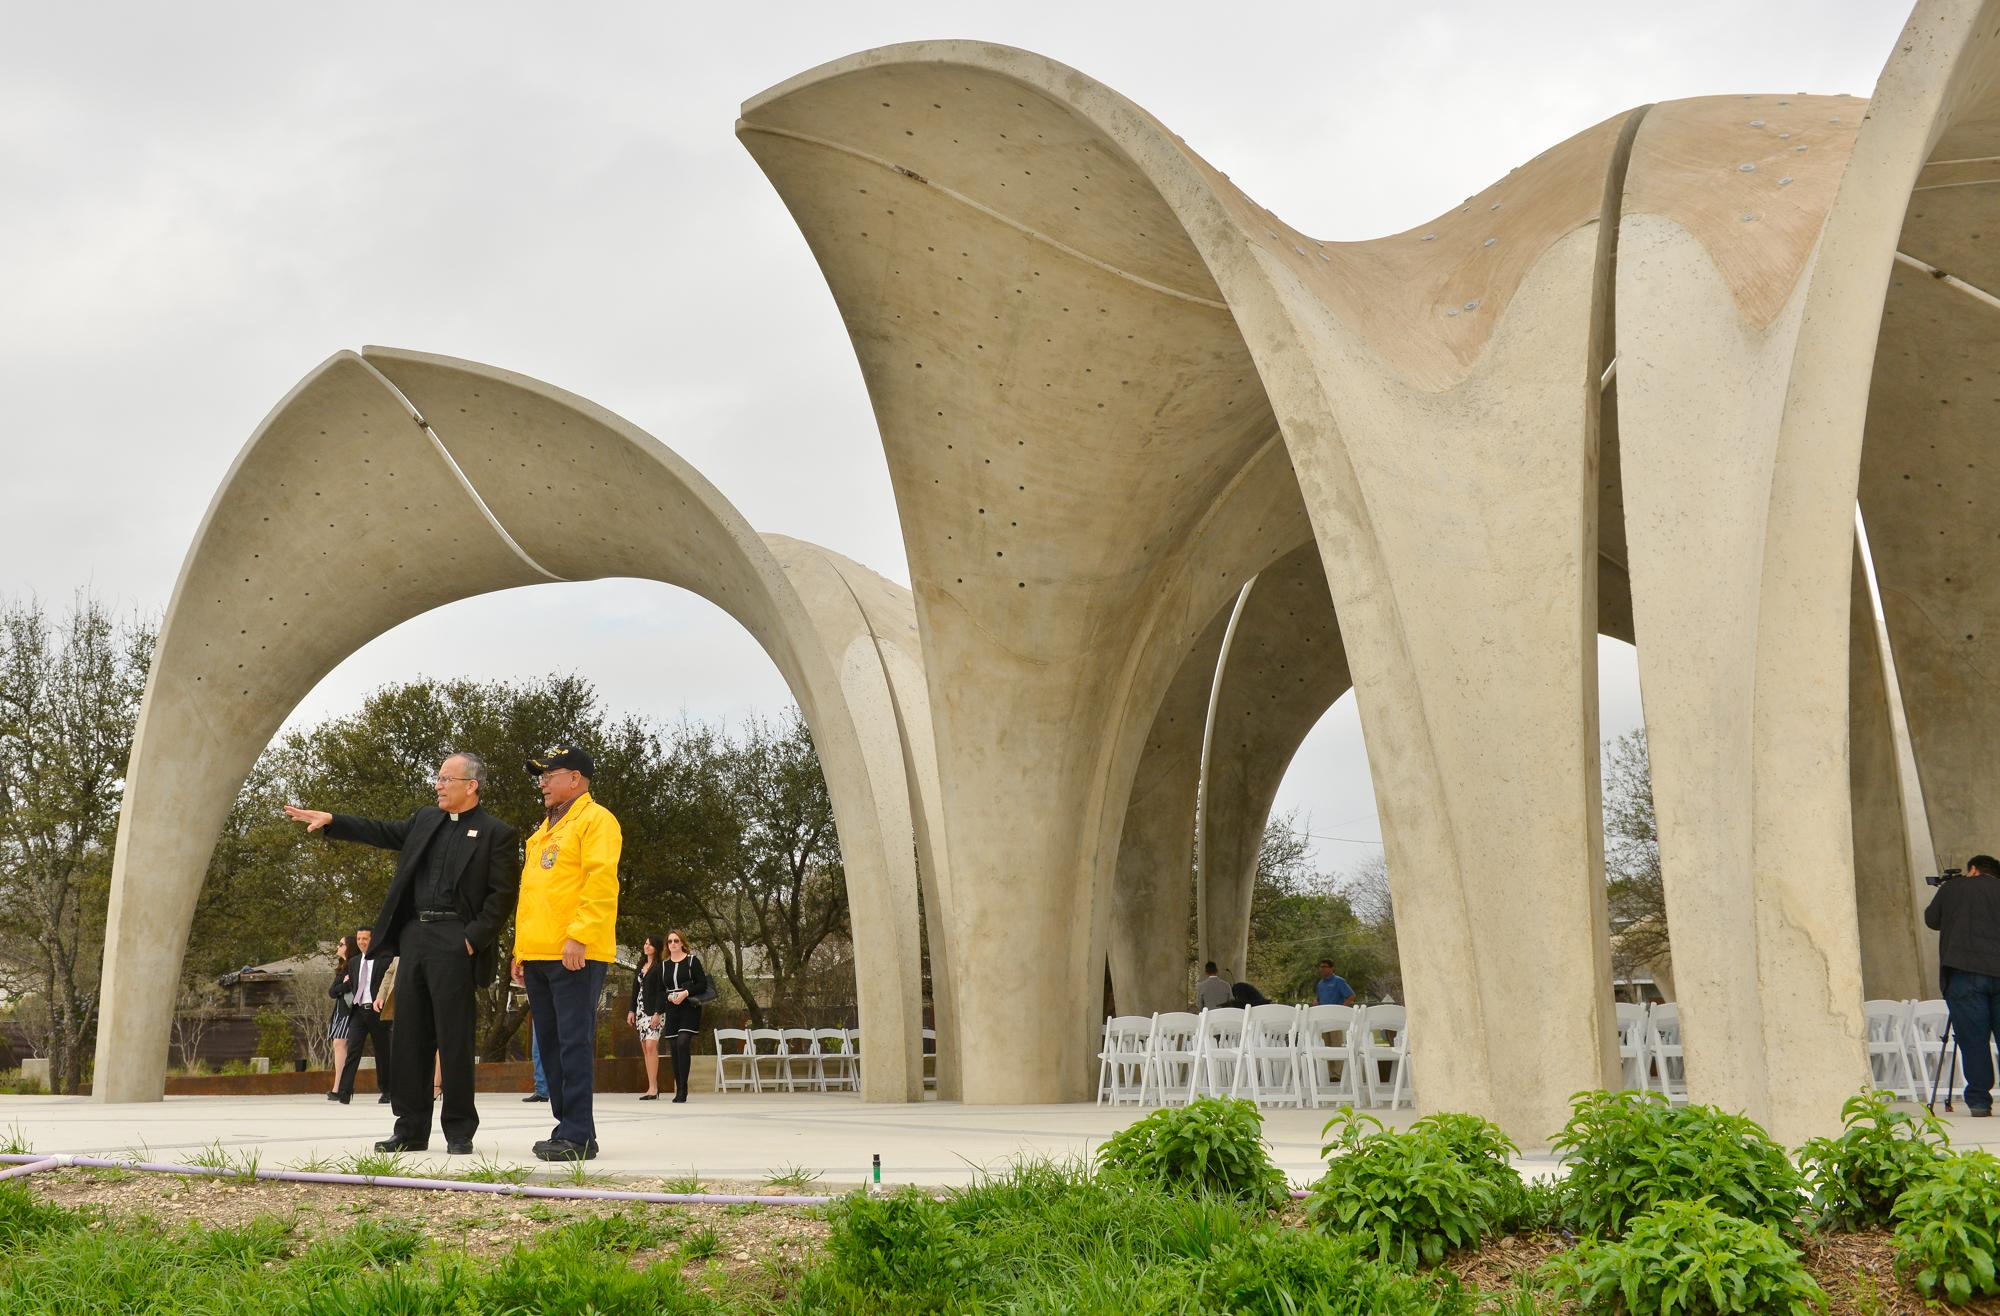 San Antonio S New Confluence Park Hailed As Game Changer